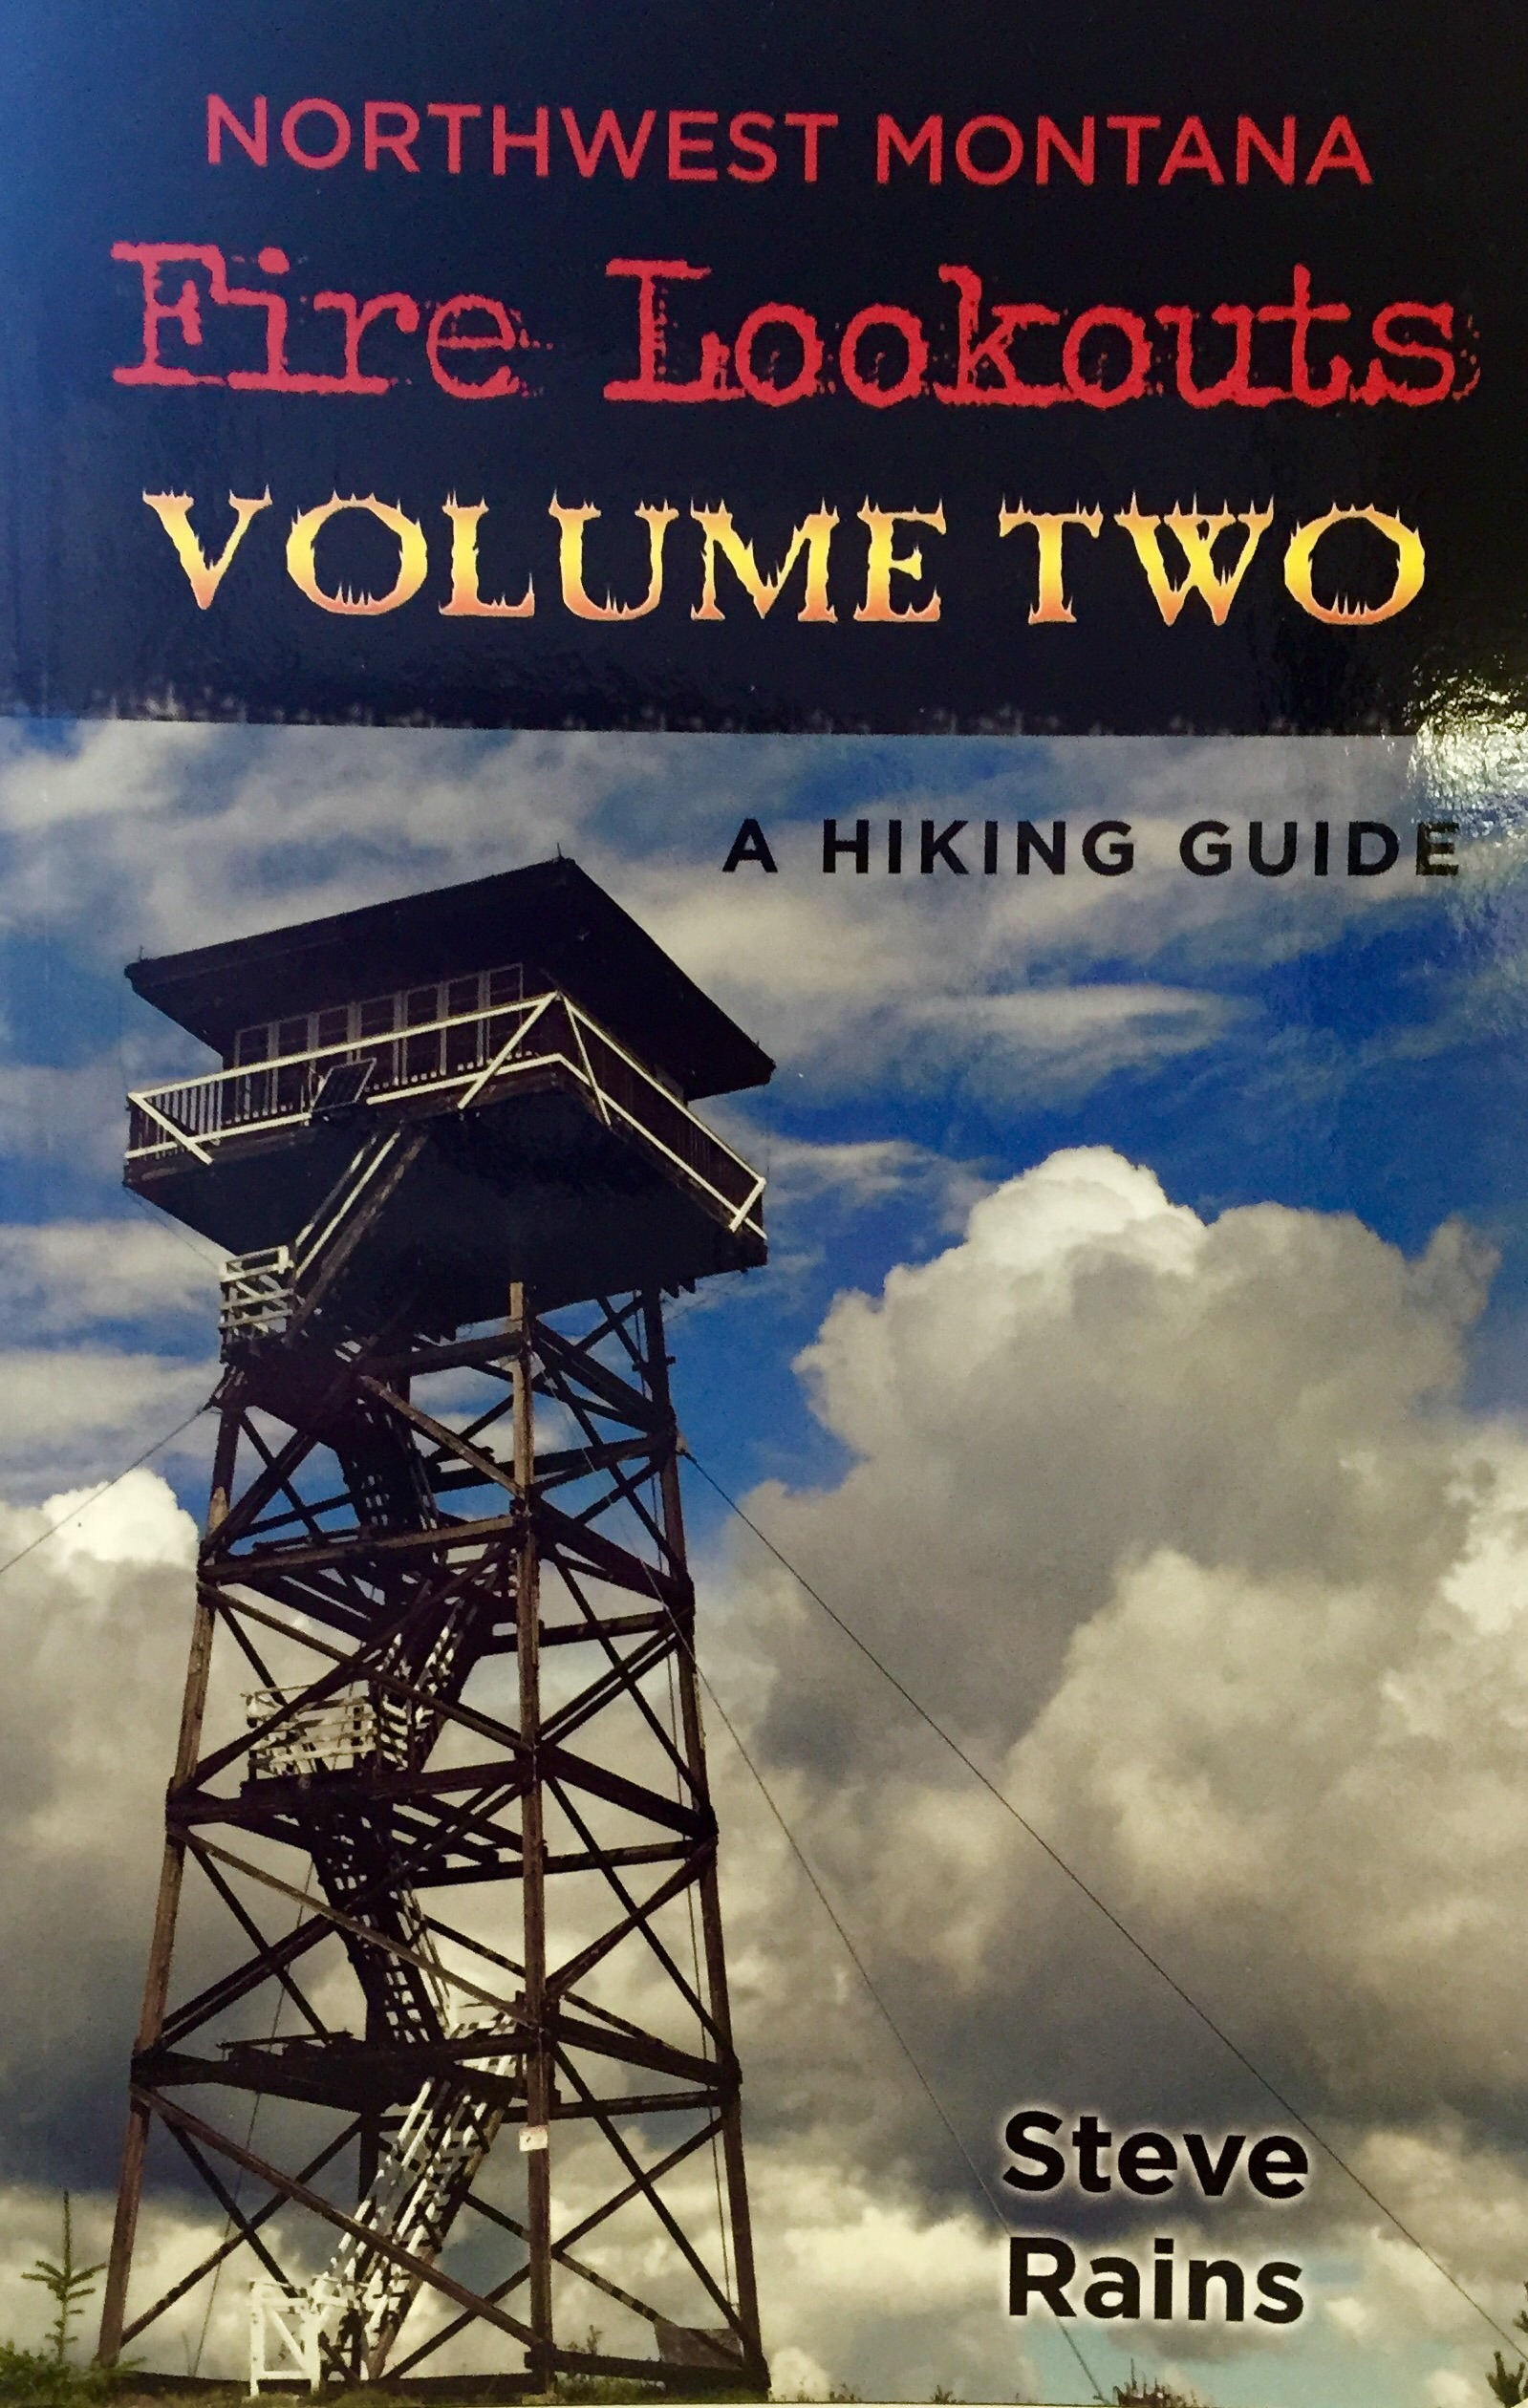 Northwest Montana Fire Lookouts Volume Two